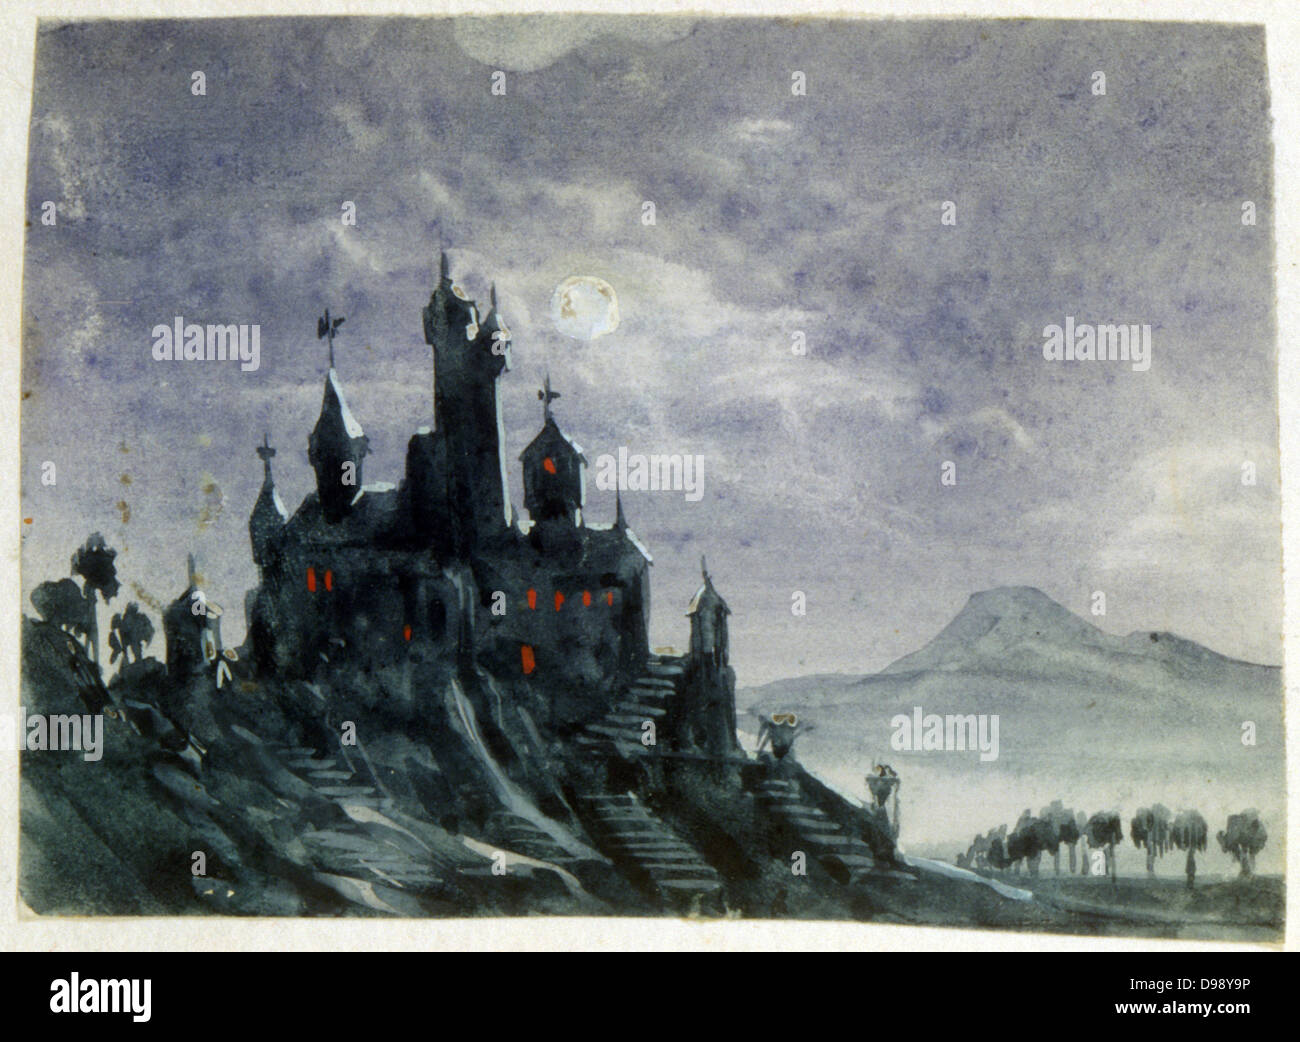 View of a Fantastic Chateau by Moonlight'. Watercolour and gouache. Aurore Amadine Lucie Dupin (1804-1876) French - Stock Image